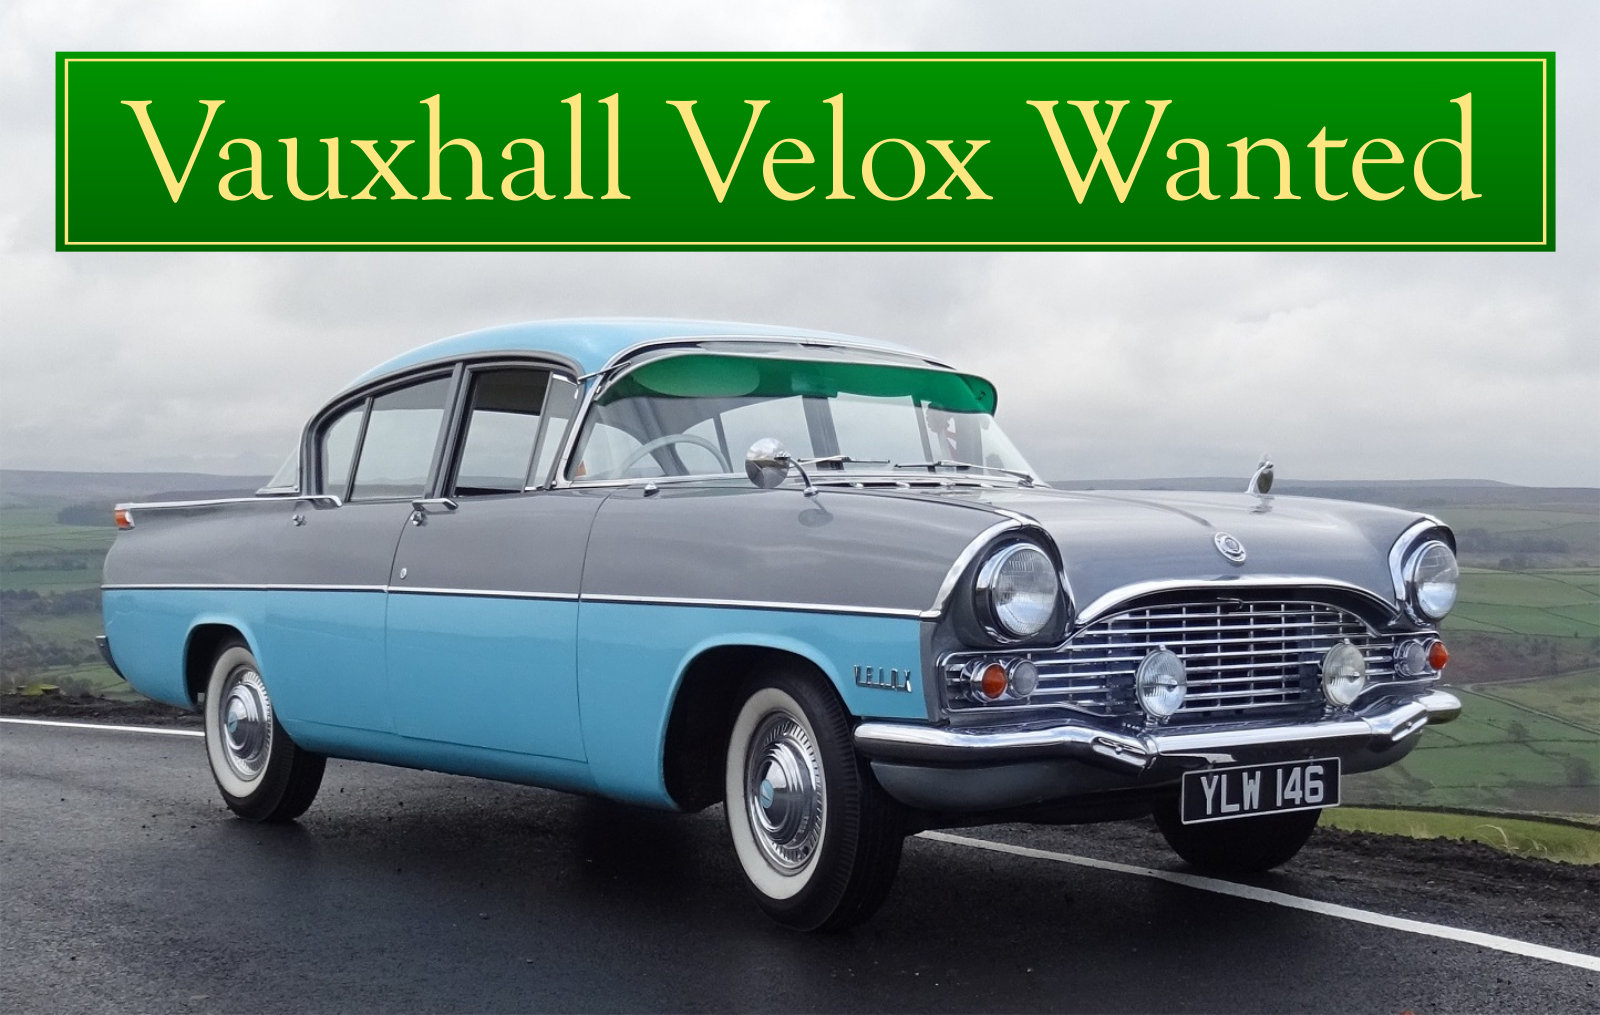 VAUXHALL VELOX WANTED, CLASSIC CARS WANTED, INSTANT PAYMENT Wanted (picture 1 of 6)